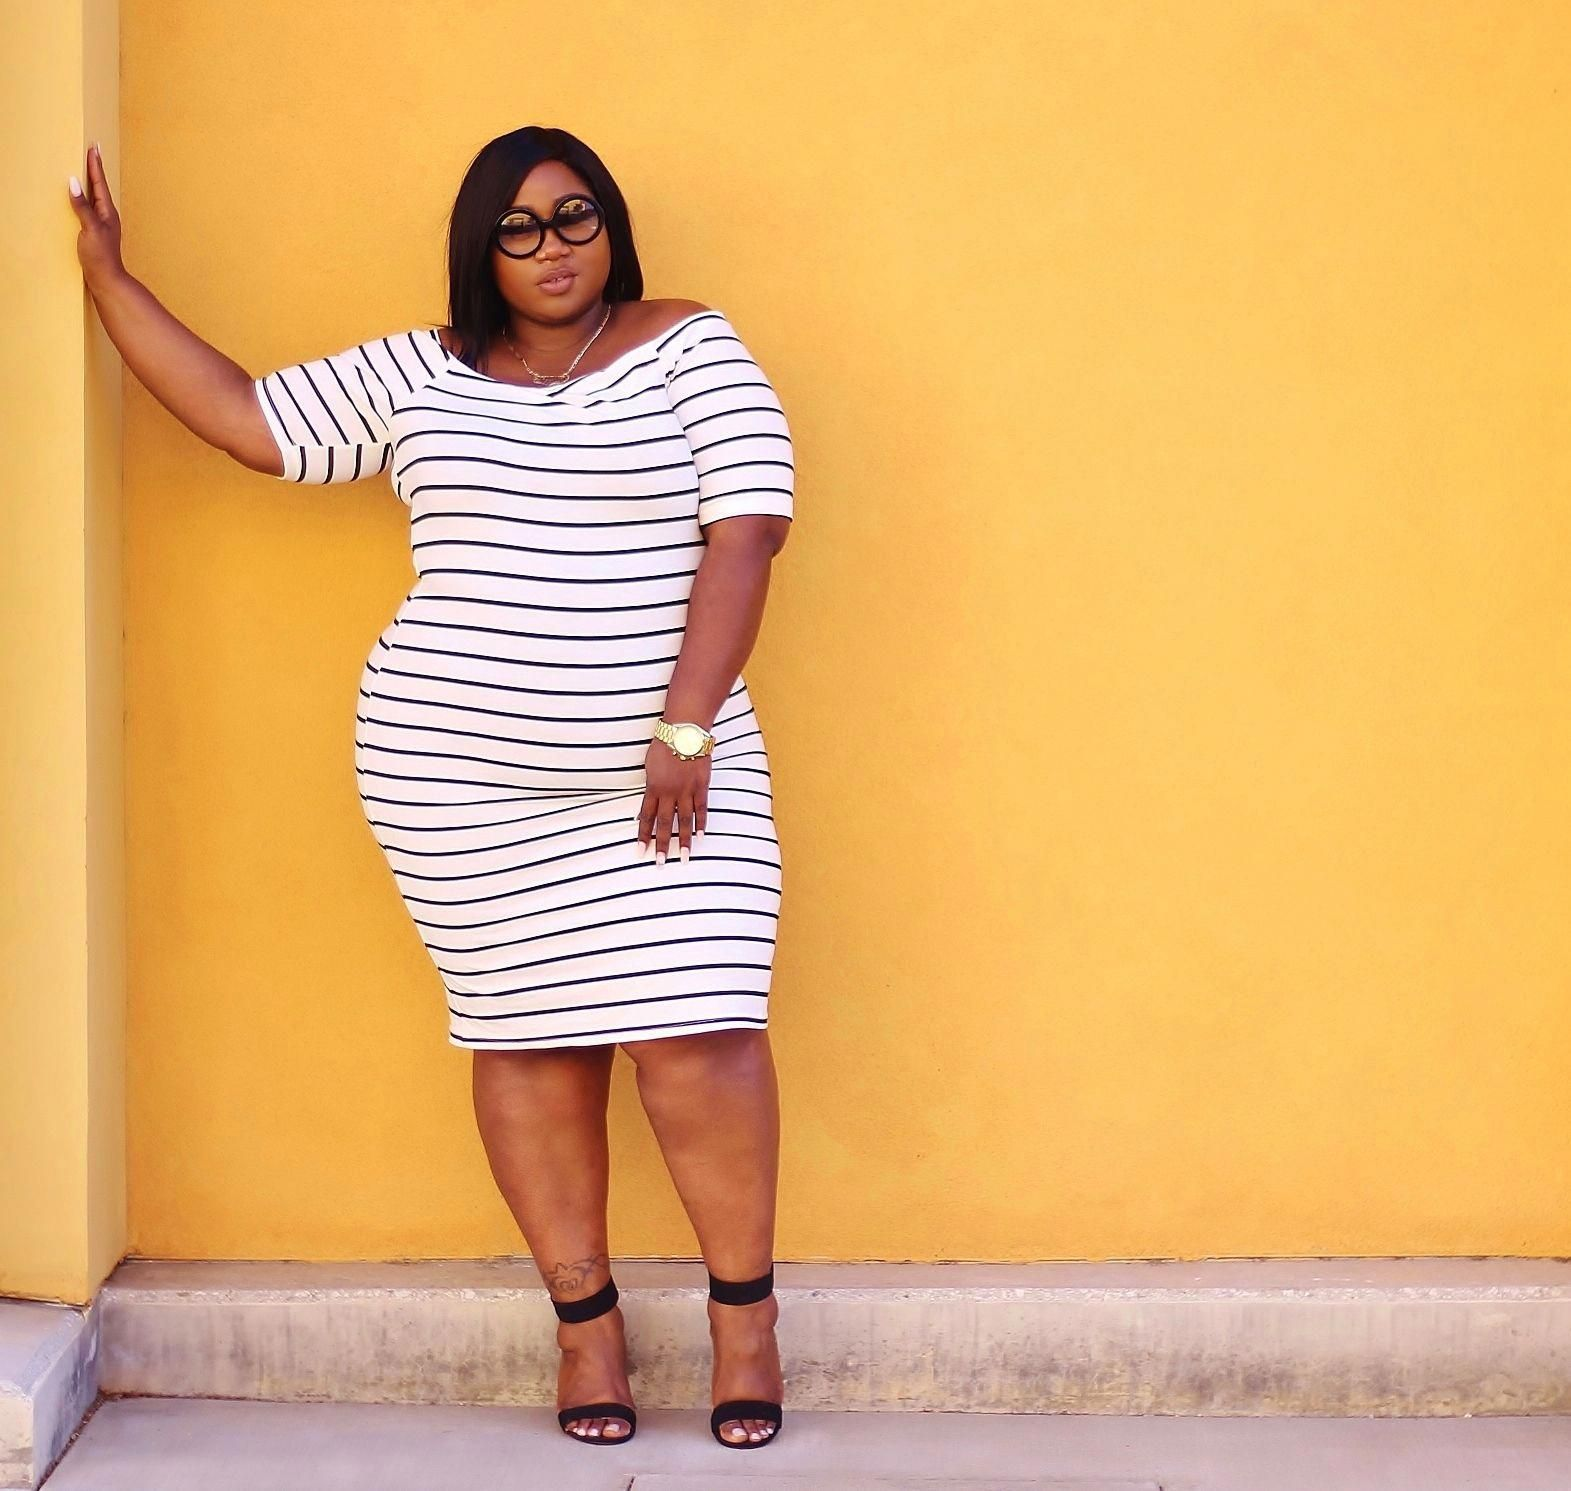 Kilkenny BBW dating - Plus size singles and personals in